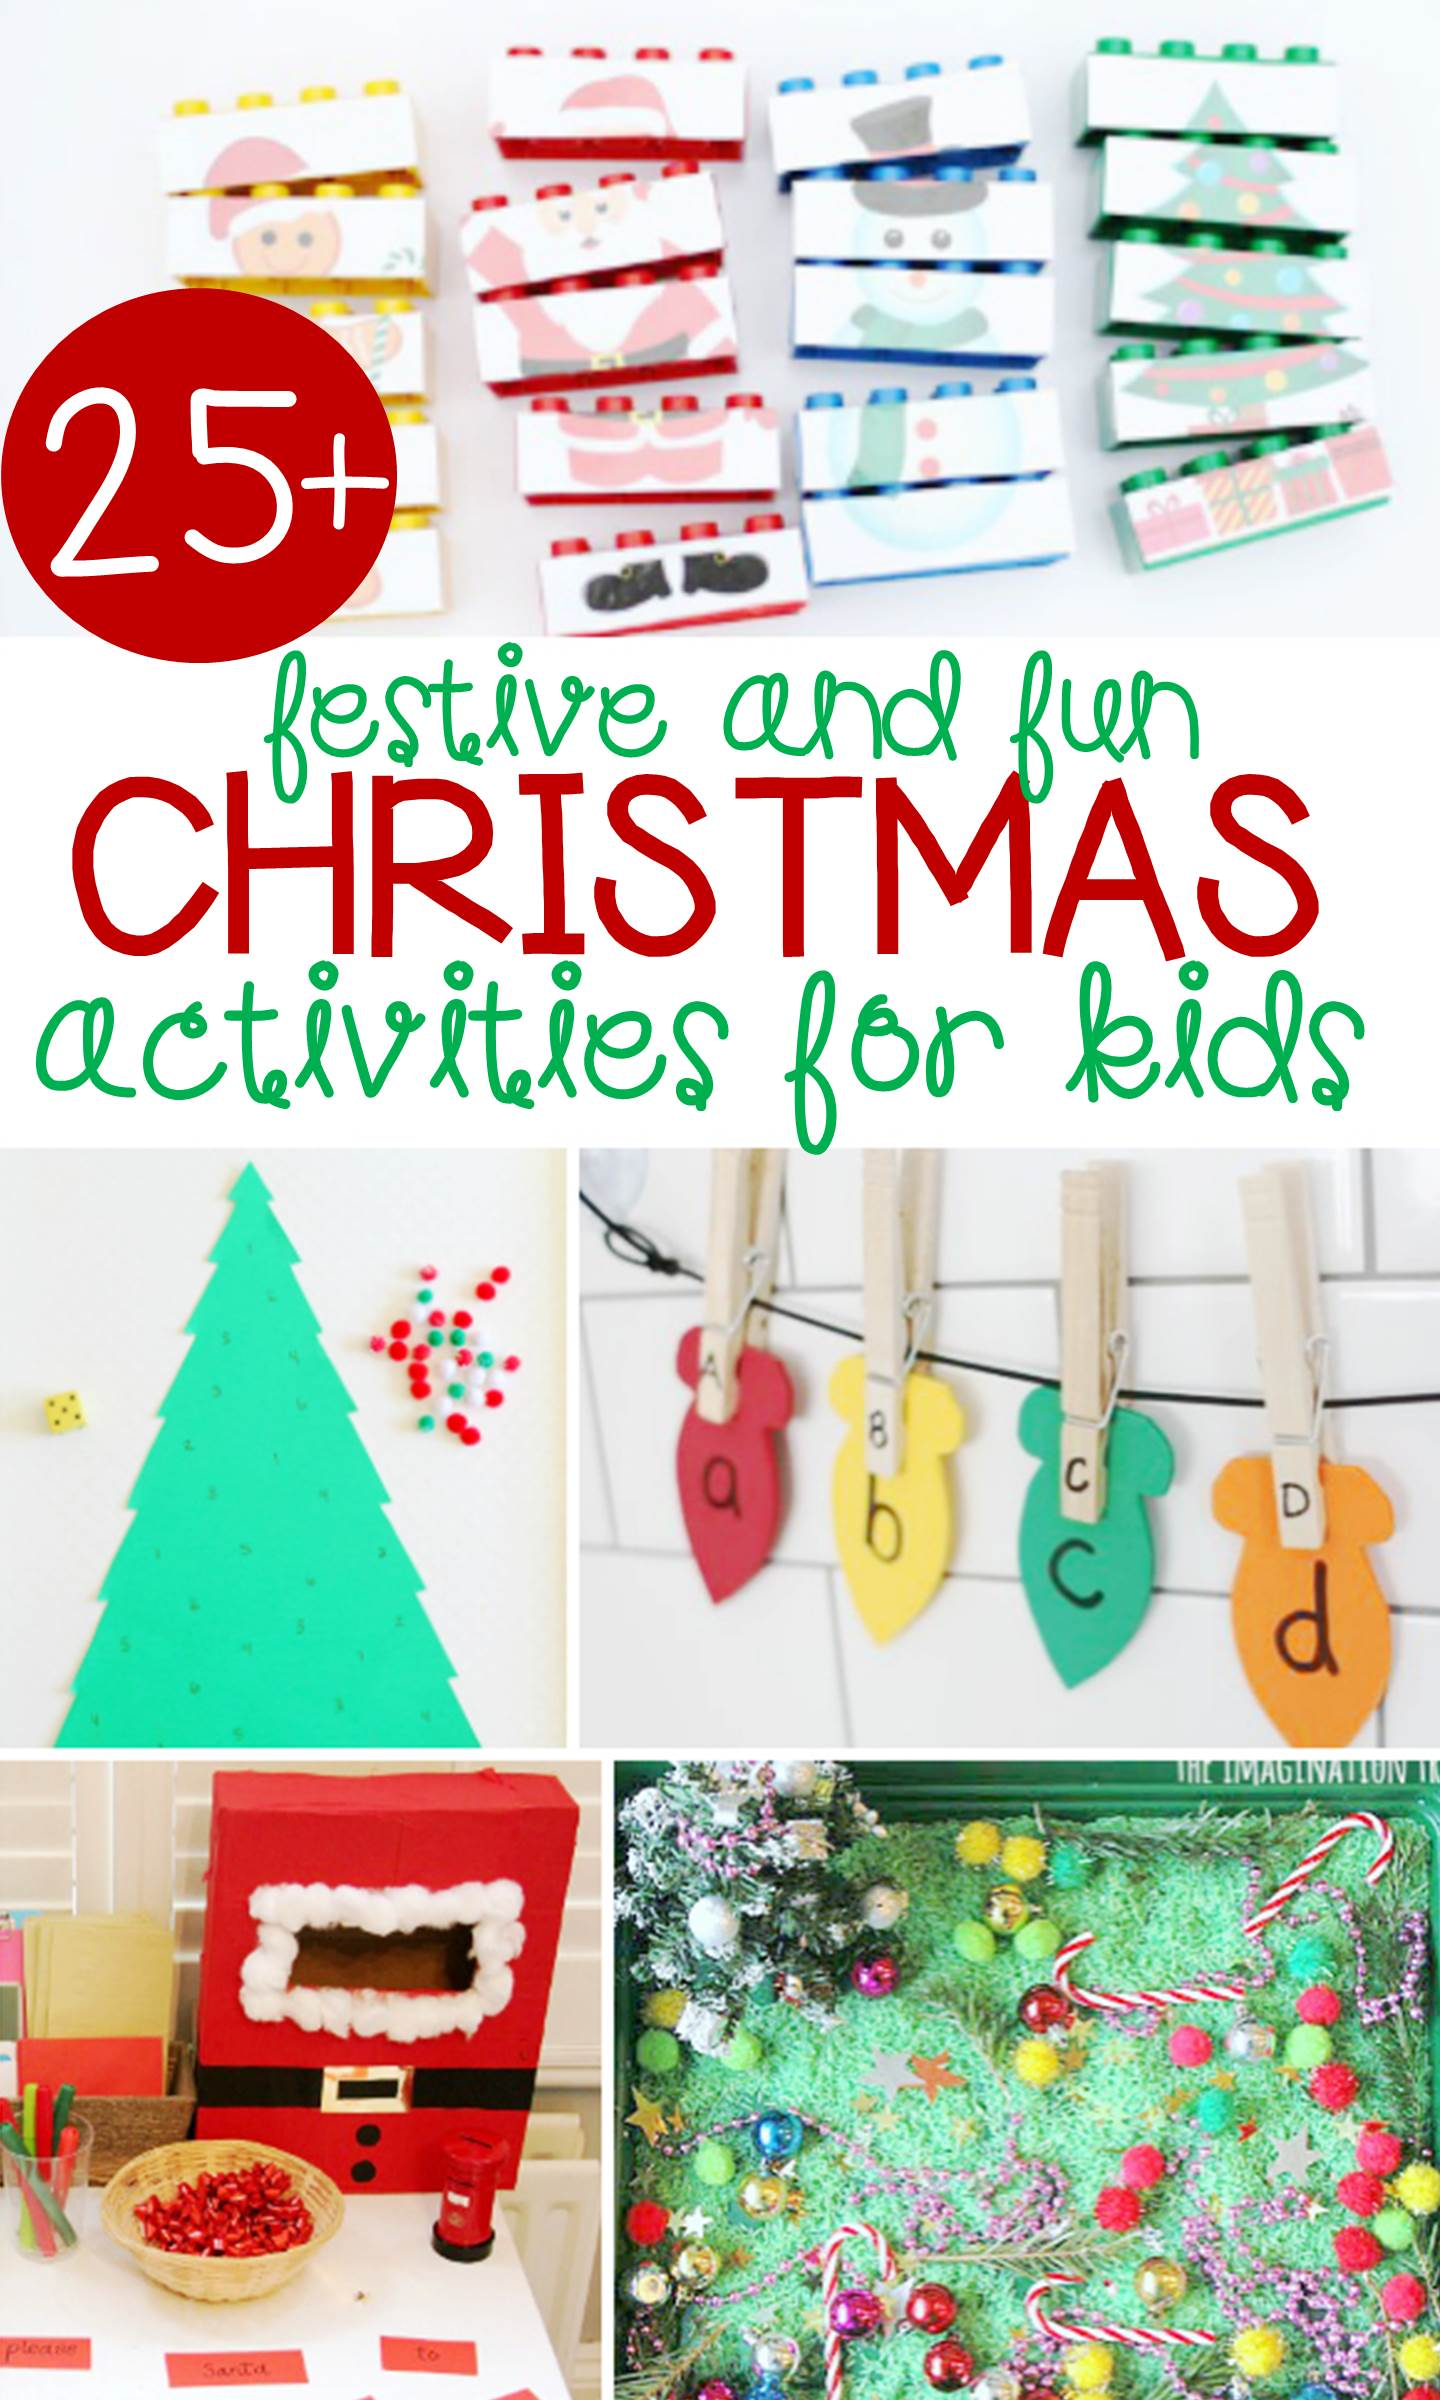 Festive And Fun Christmas Activities For Kids